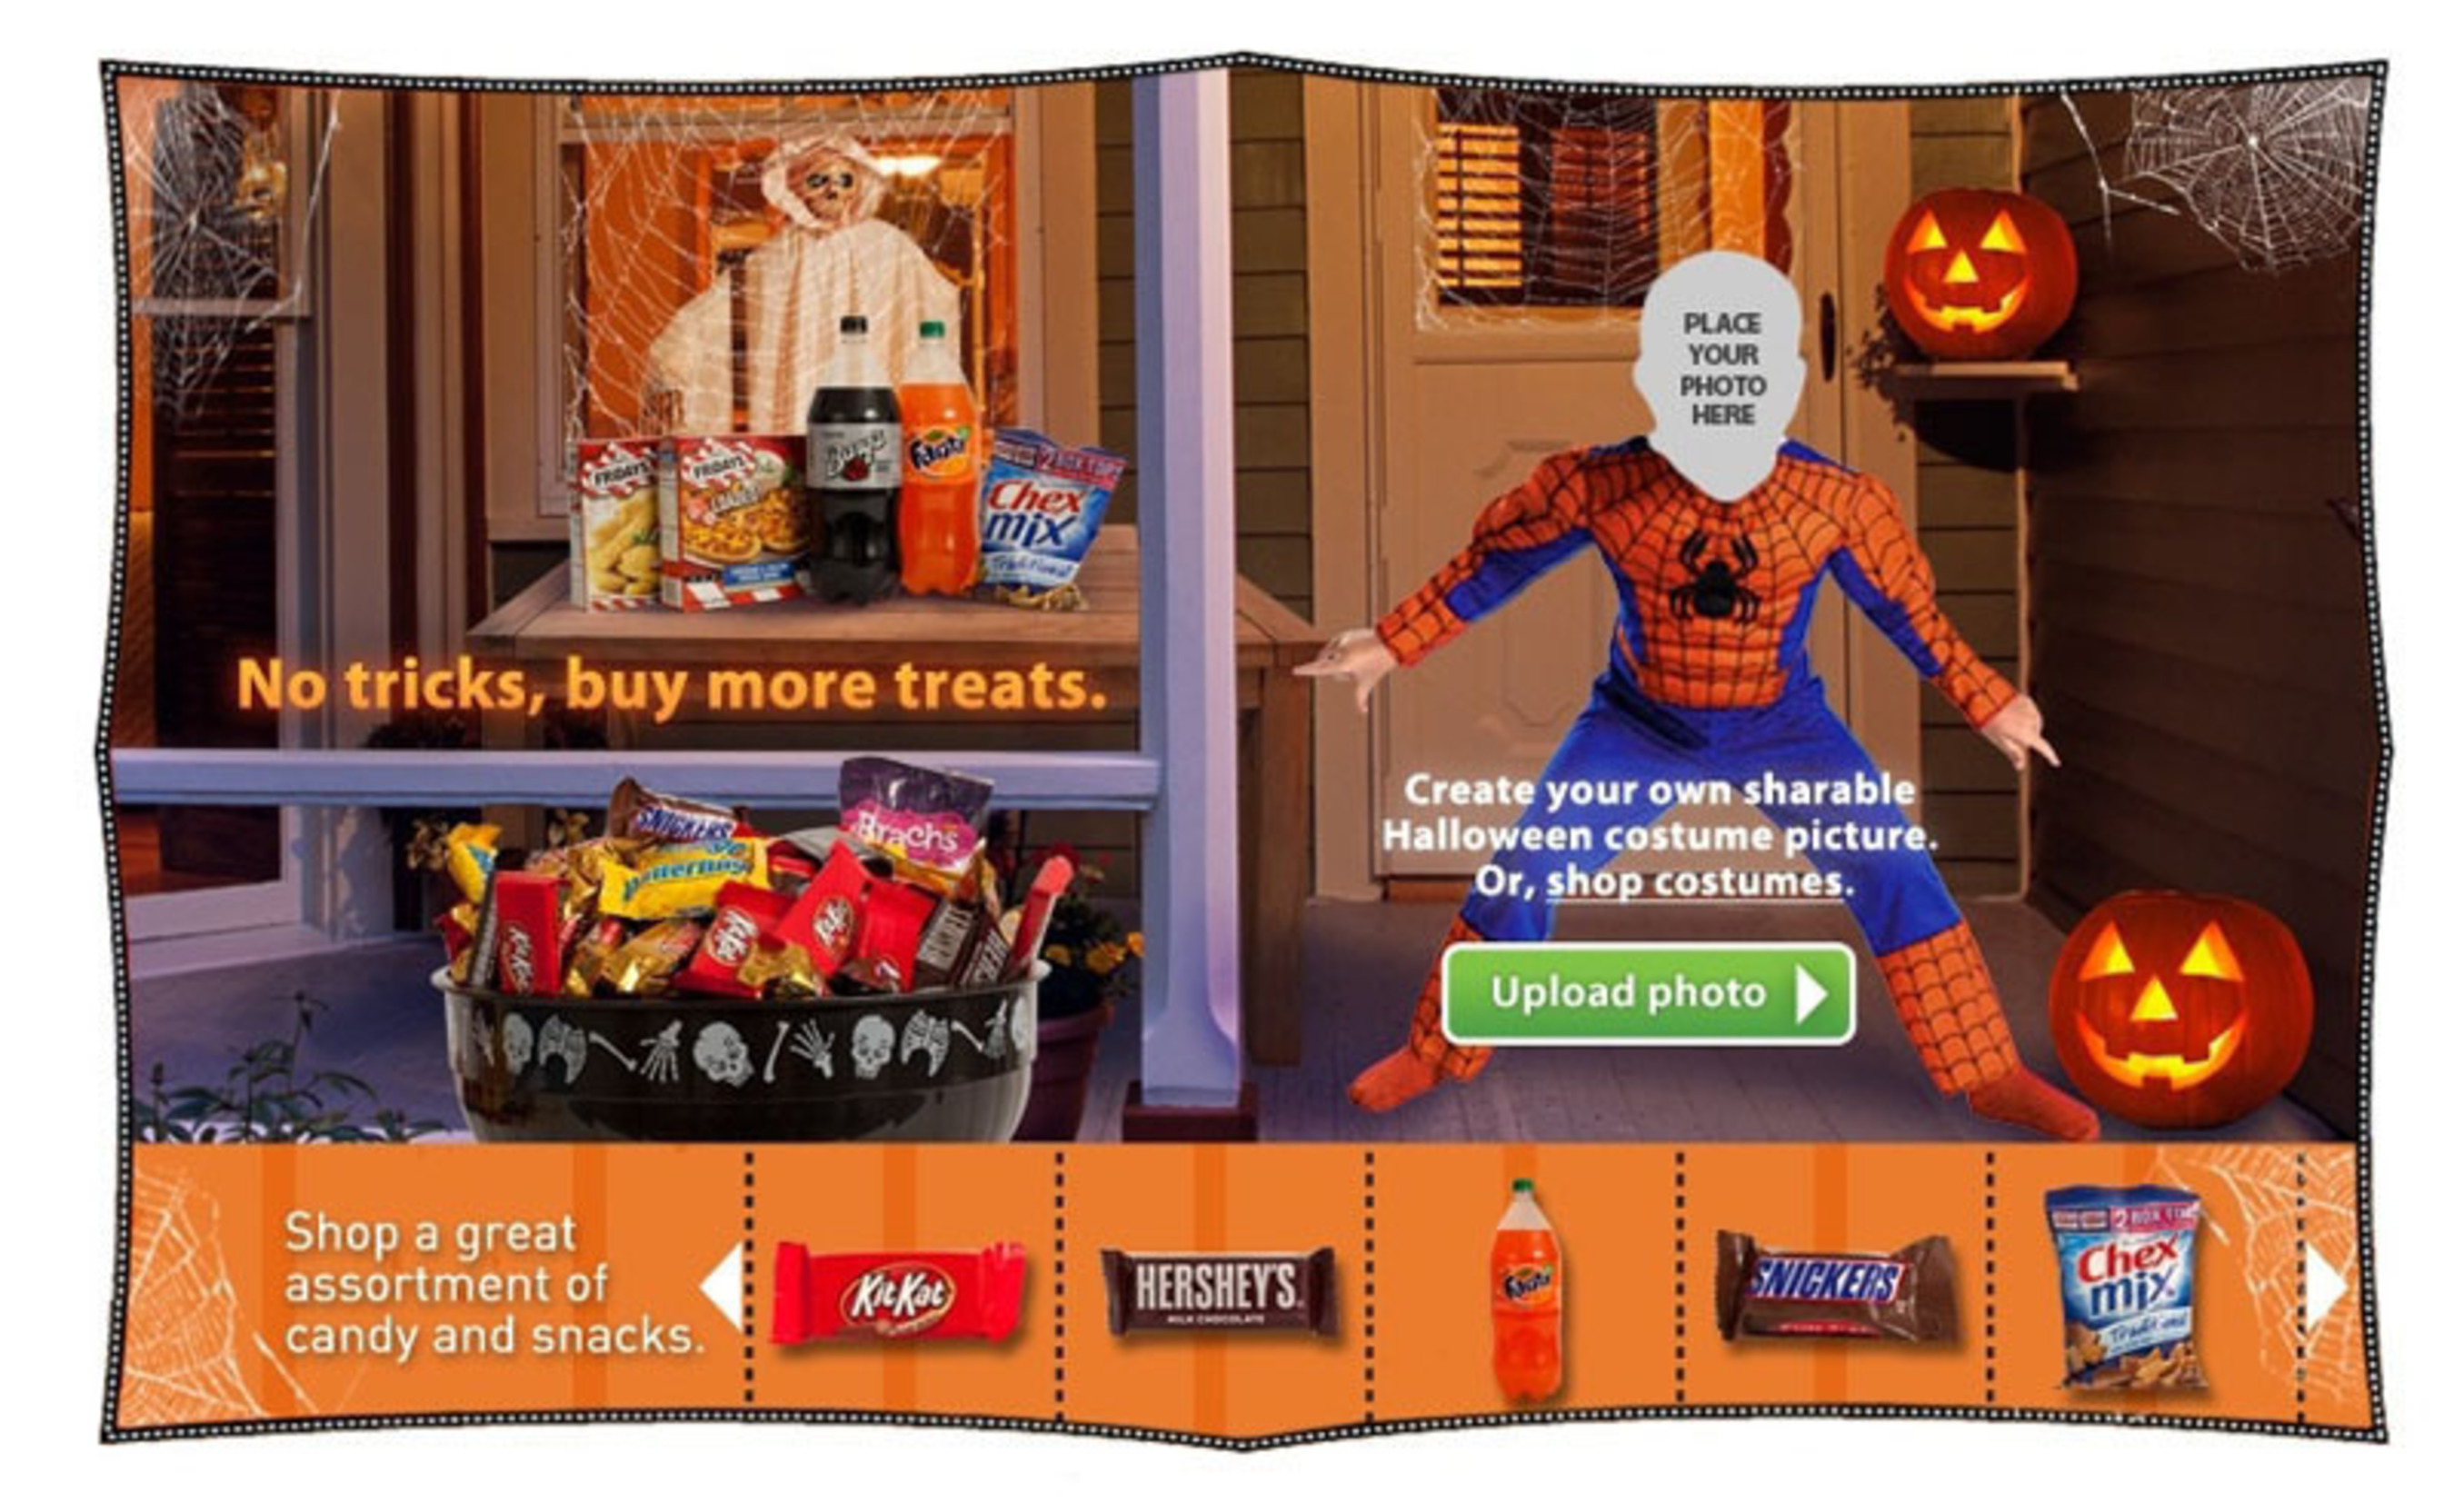 walmart halloween costumes decorations 2012 - Walmart Halloween Decorations